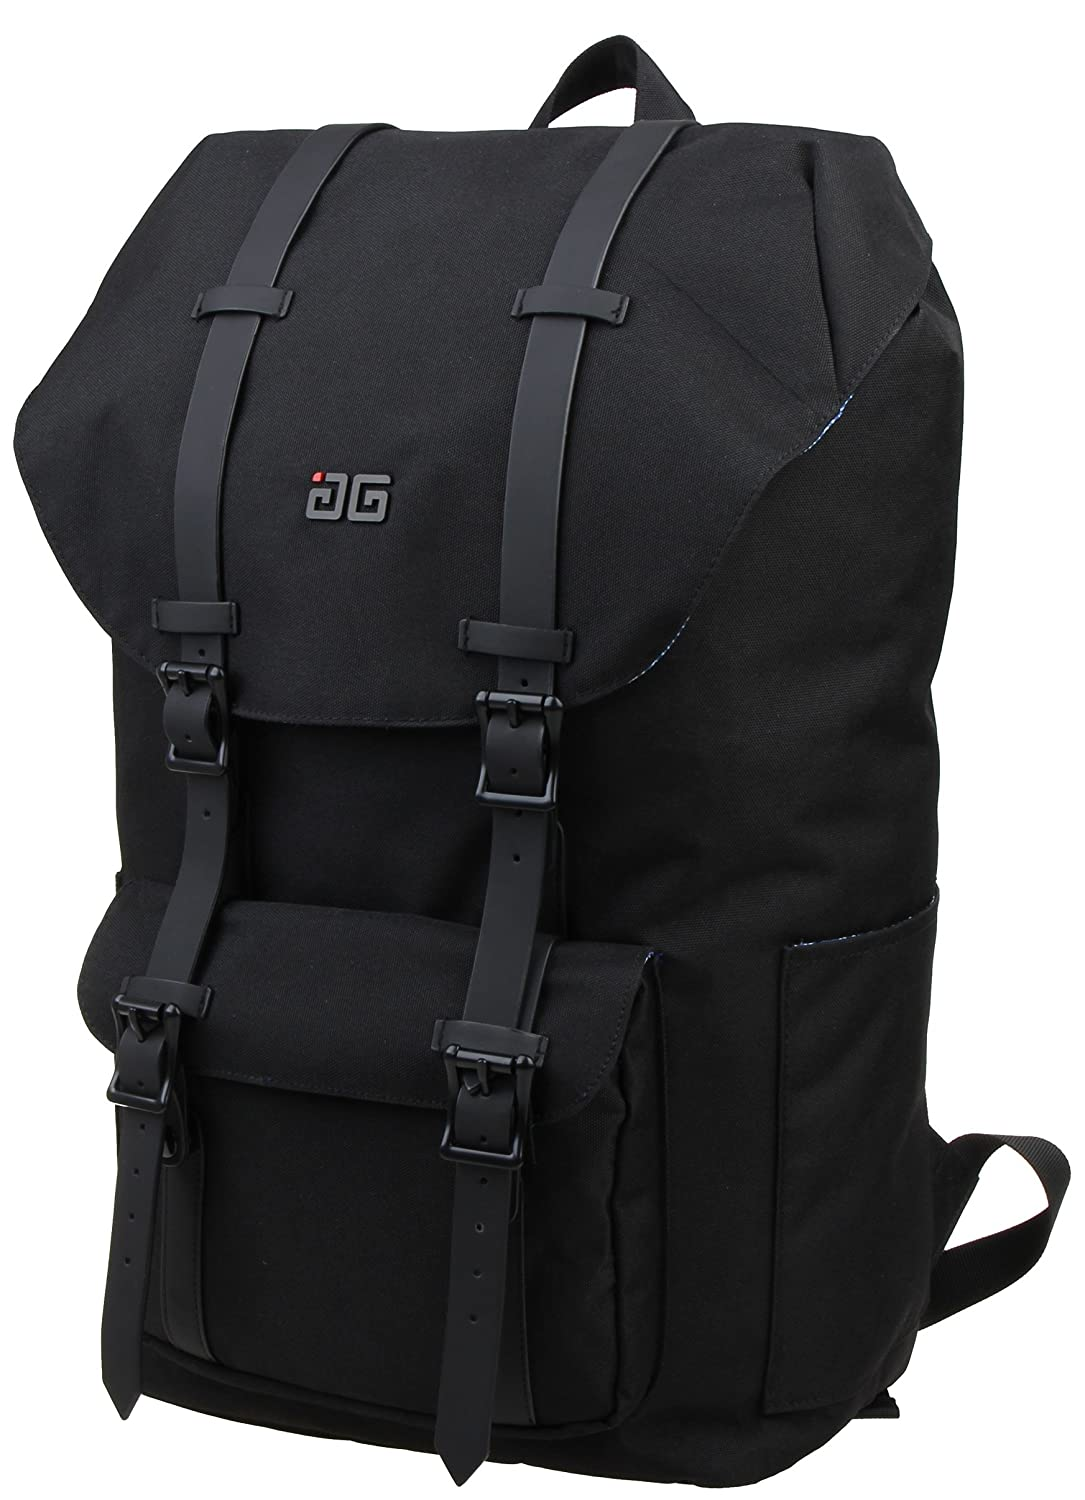 32484ab97a80 Amazon.com: Aftergen Empire Backpack School Laptop Compartment Bag ...